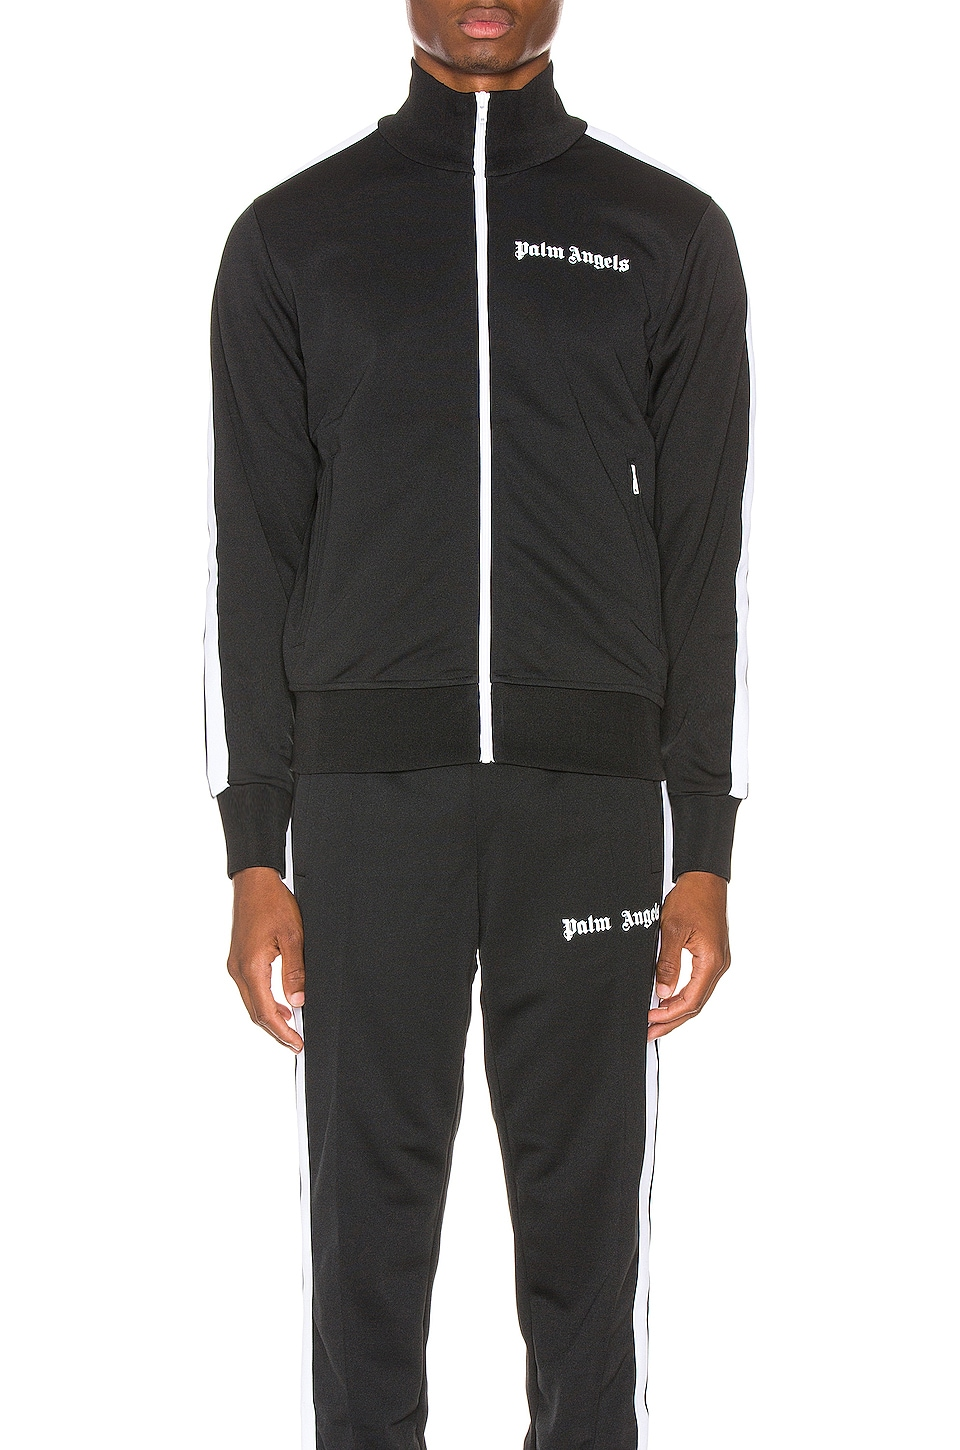 Palm Angels Classic Track Jacket in Black & White